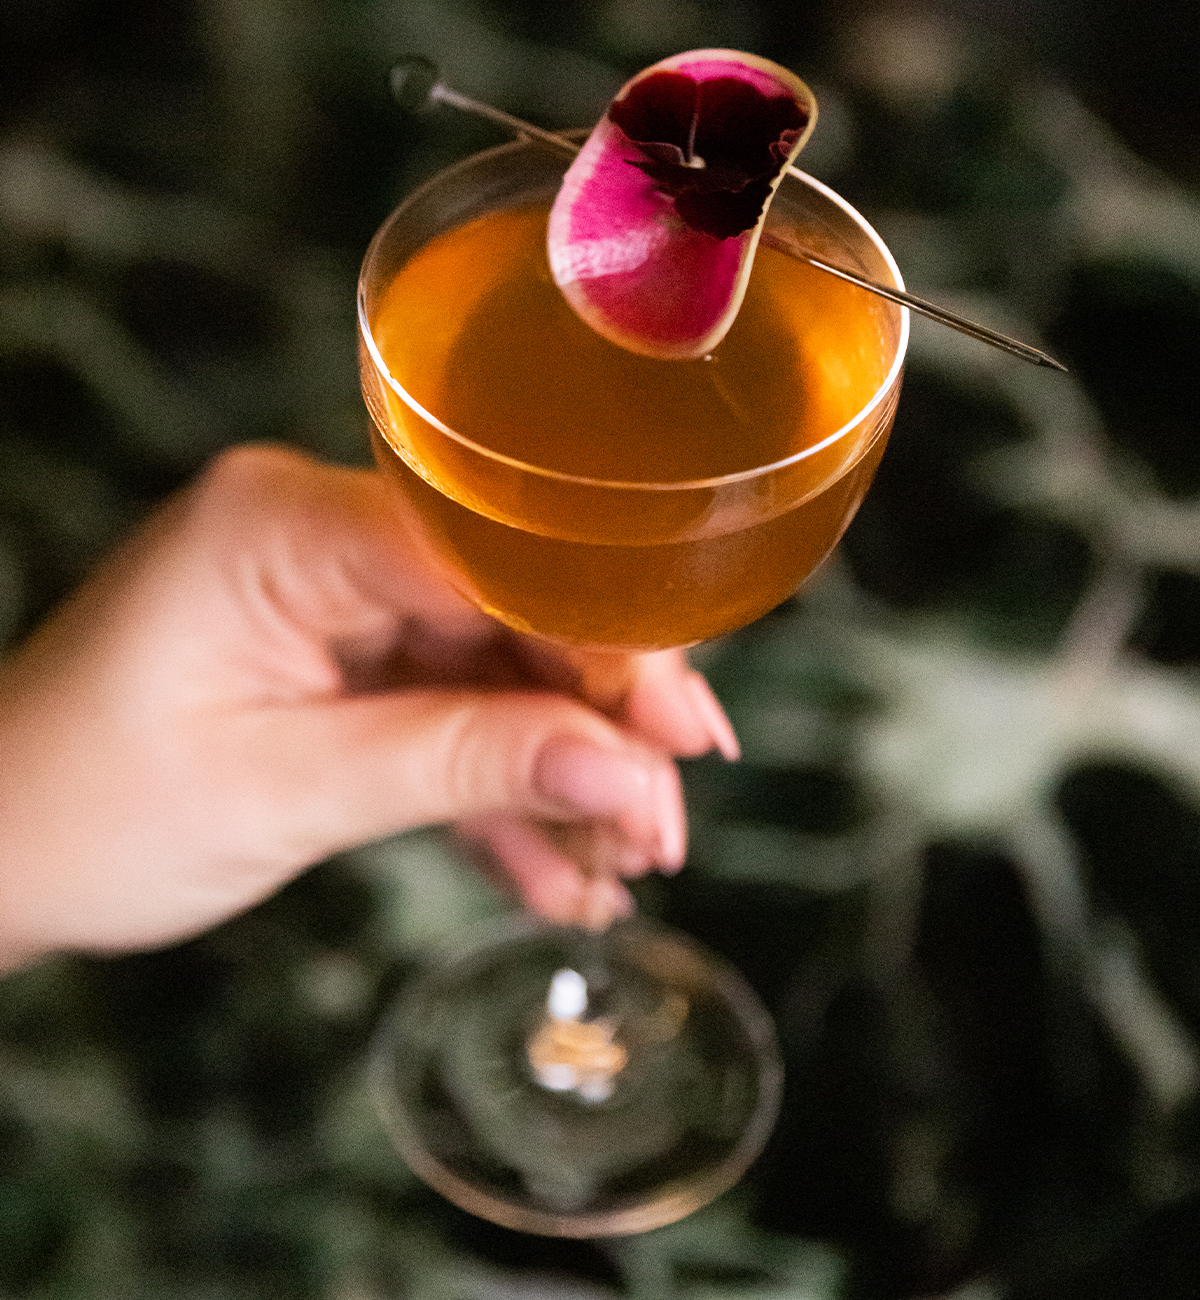 a hand holding a cocktail